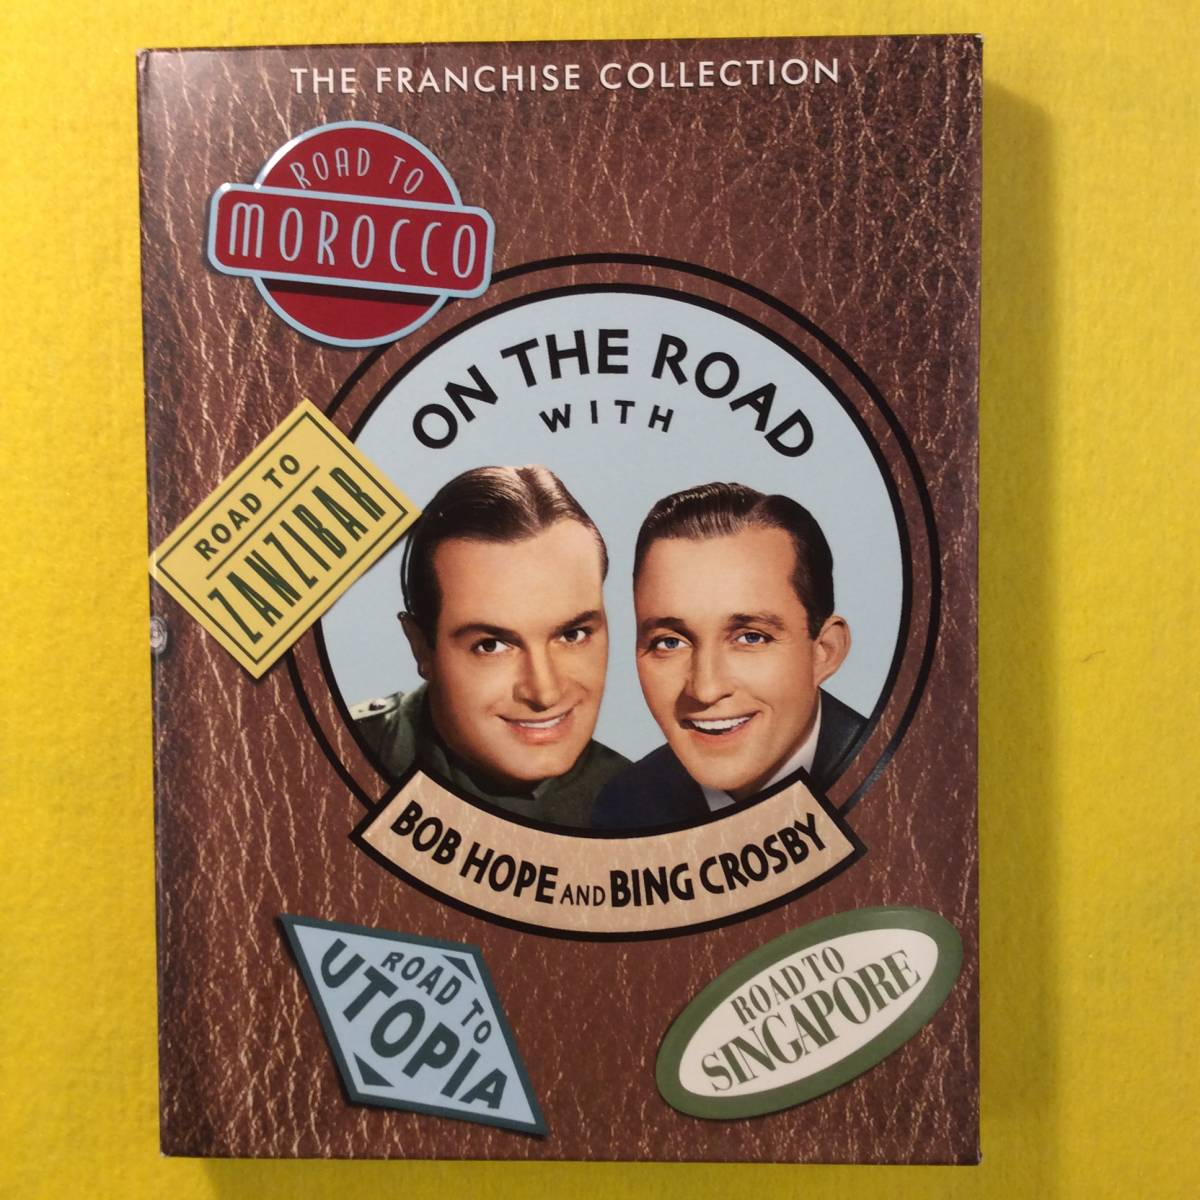 【DVD】珍道中シリーズ★ON THE ROAD with BOB HOPE and BING CROSBY★輸入盤・リージョン1★ボブ・ホープ/ビング・クロスビー★映画_画像1